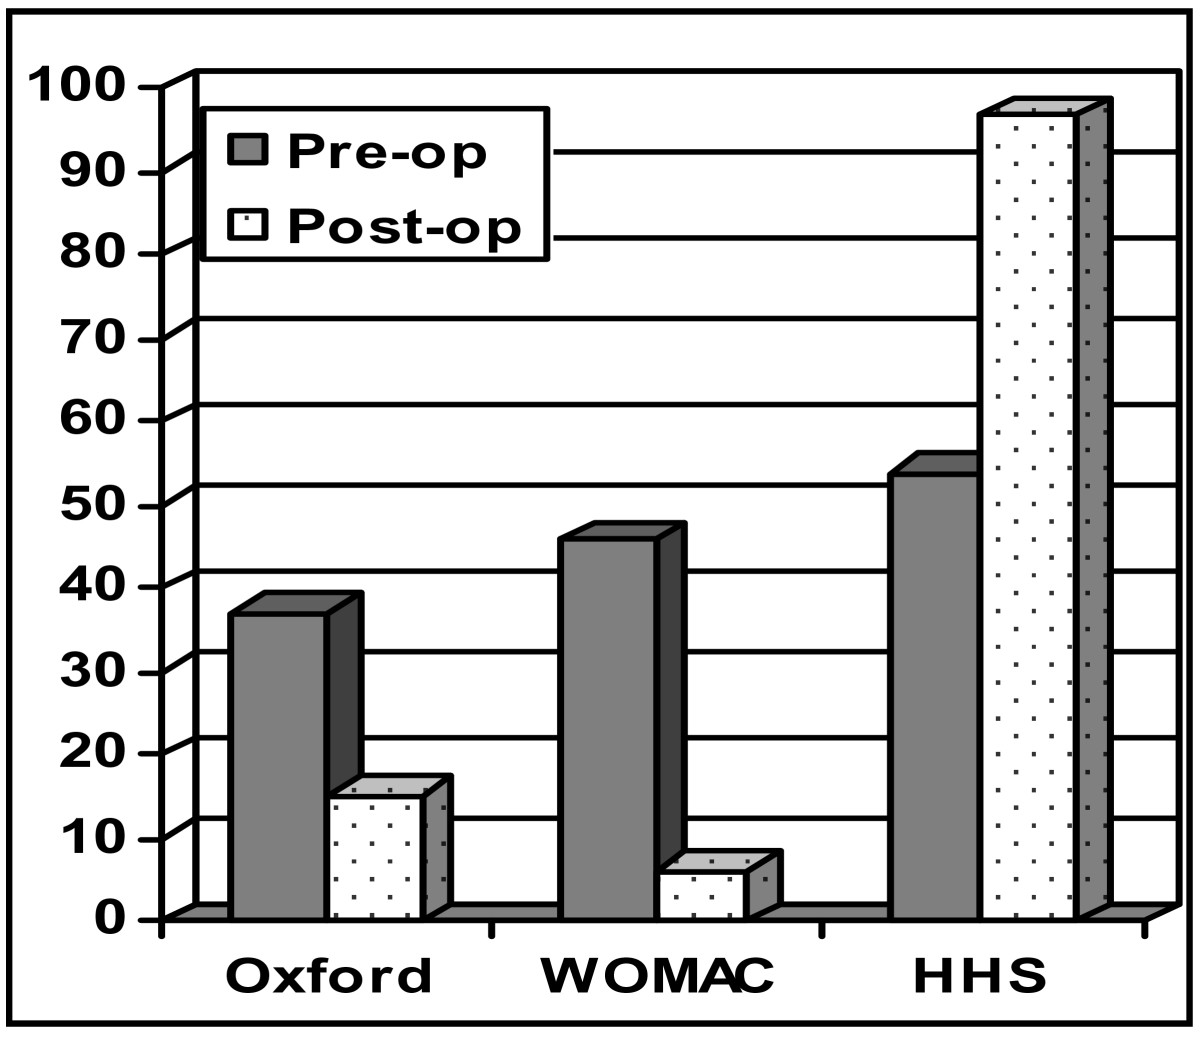 https://static-content.springer.com/image/art%3A10.1186%2F1749-799X-5-8/MediaObjects/13018_2009_Article_150_Fig2_HTML.jpg